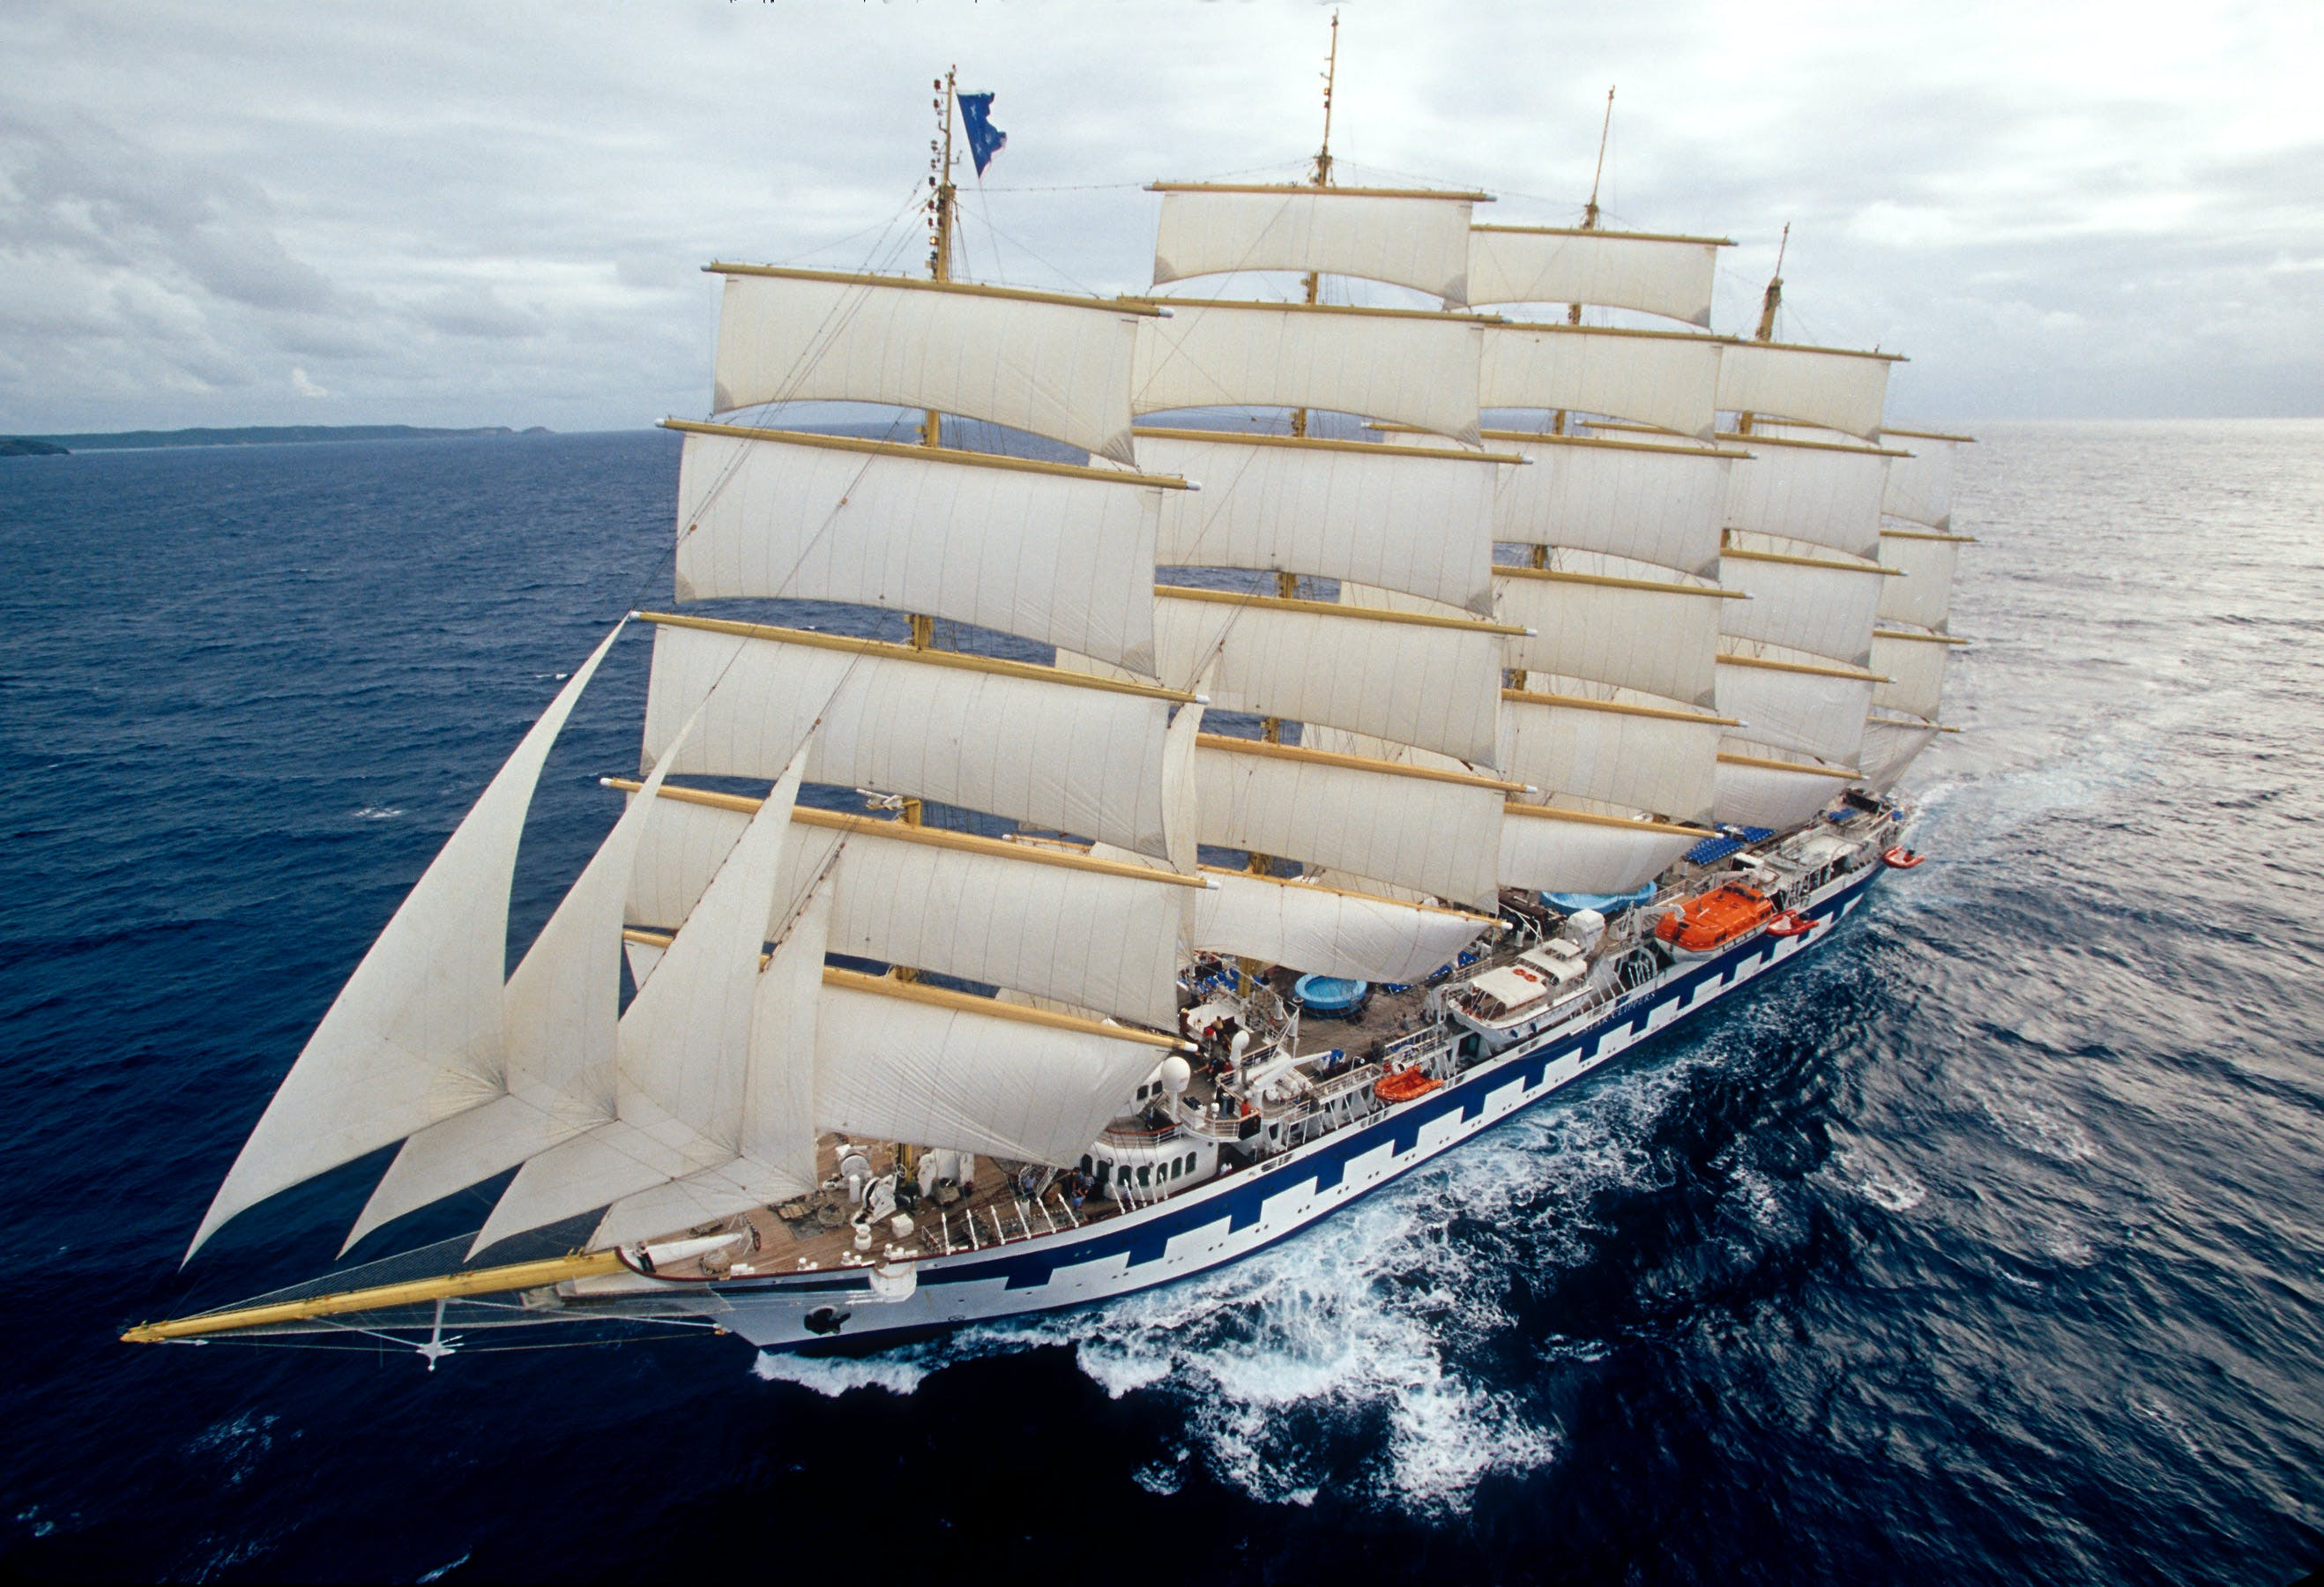 2019 Sailing Adventures with Star Clippers